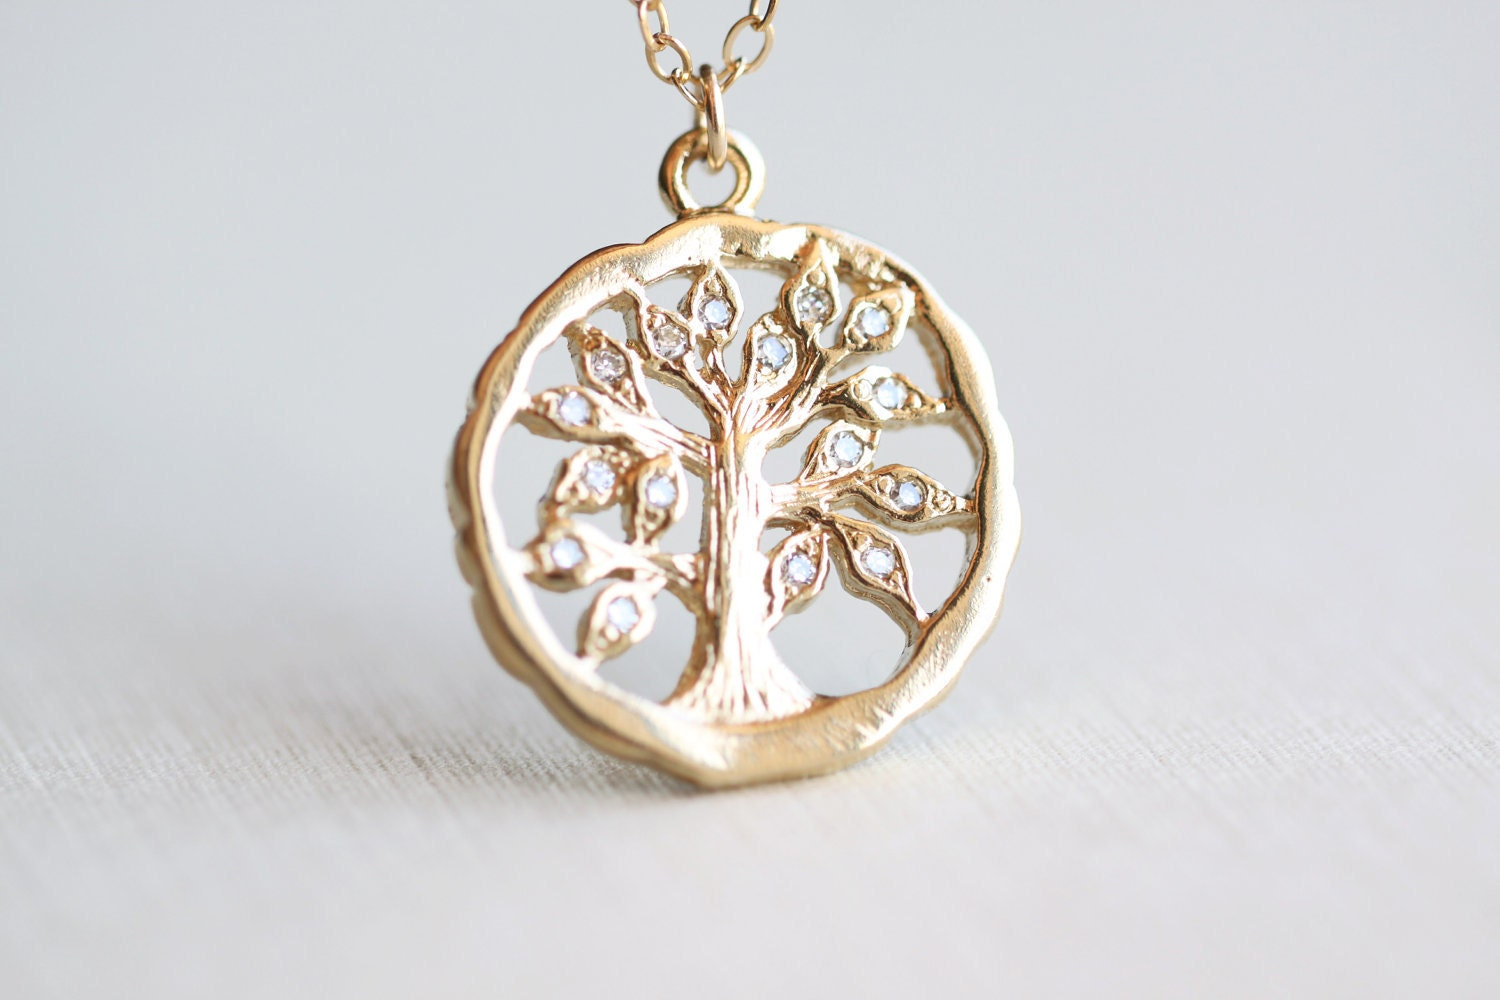 Family Tree Necklace Gold Oak Tree Pendant With Crystal. Suunto Core Watches. Designer Jewellery. Green Stone Earrings. Gold Oval Bangle Bracelet. Necklace Gemstone. Snake Bangle Bracelet. Floral Chains. Matching Bands